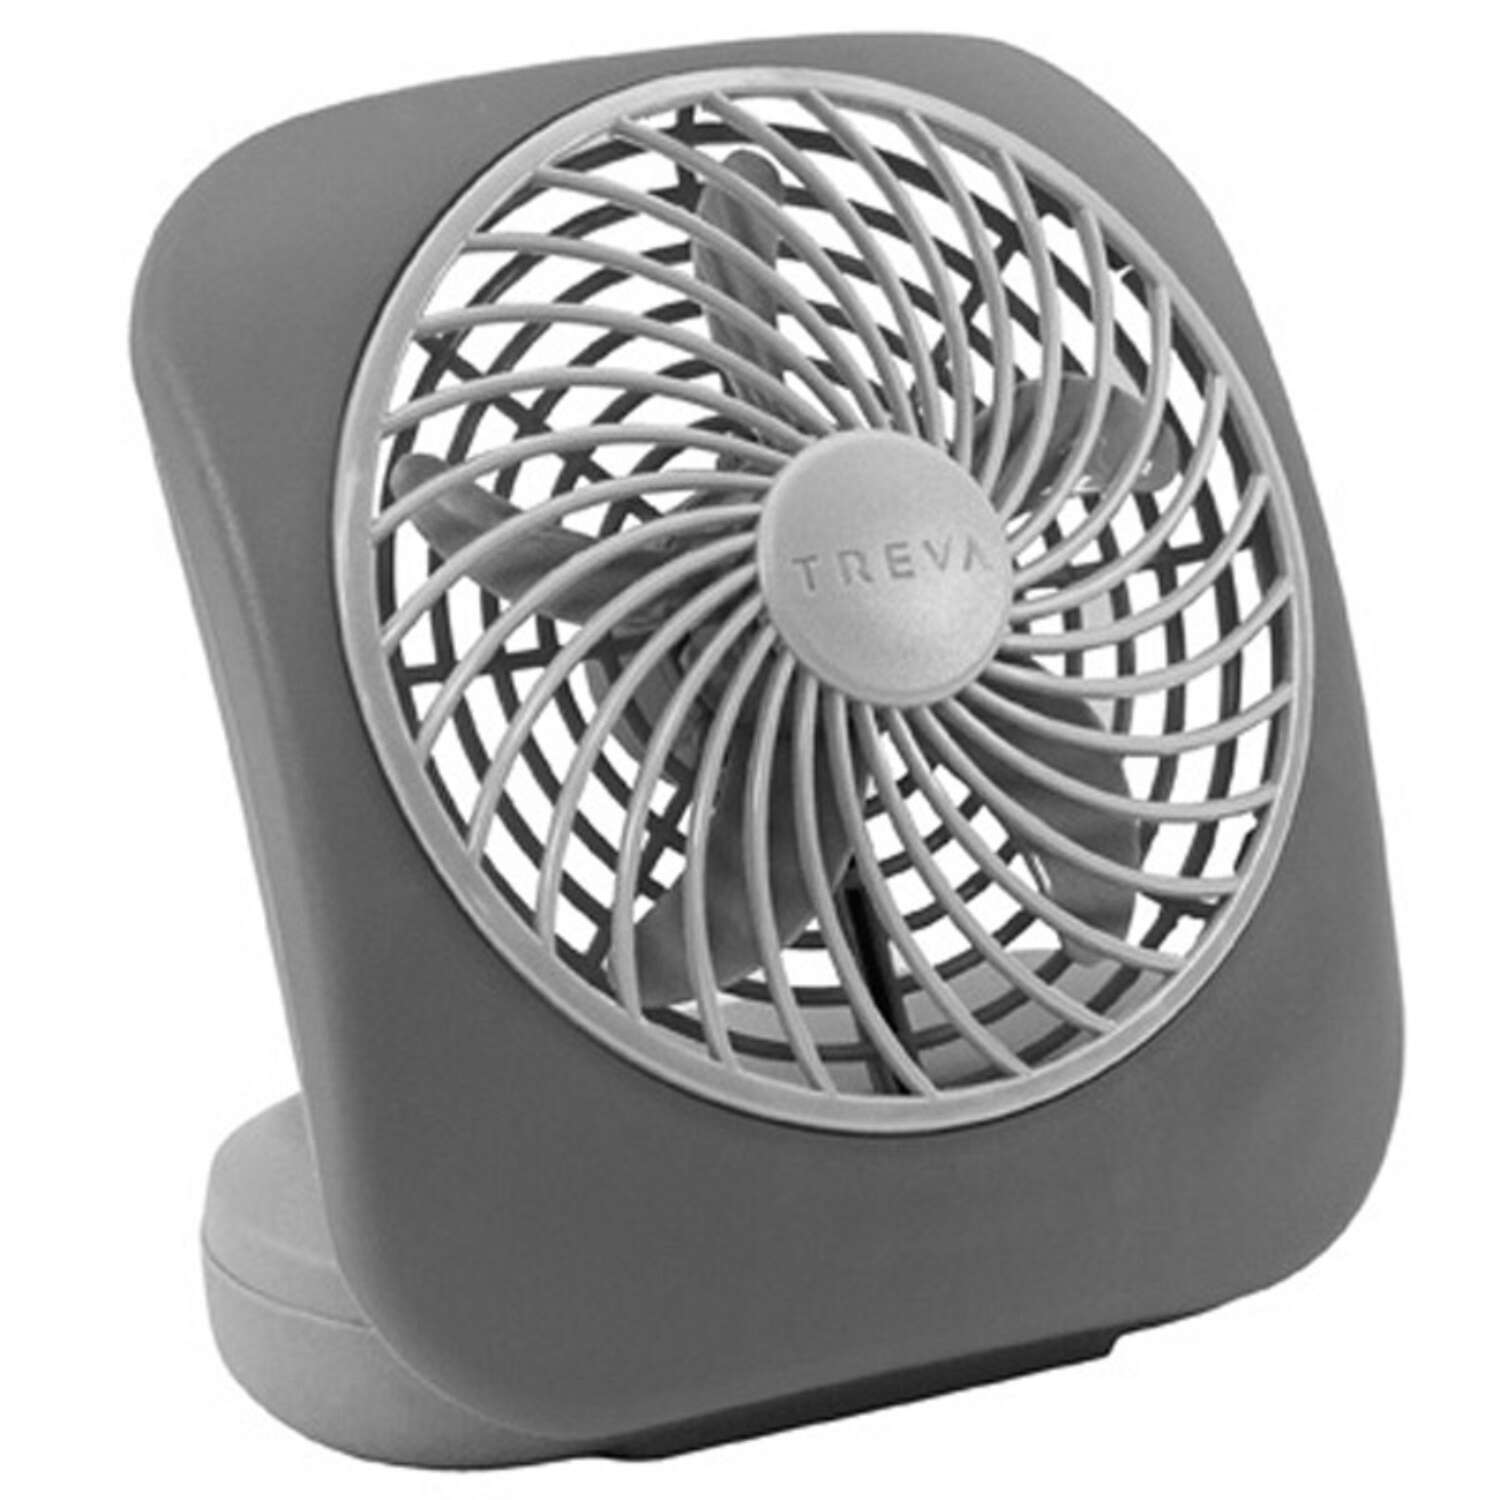 O2 Cool  6.29 in. H x 5 in. Dia. 2 speed Personal Fan